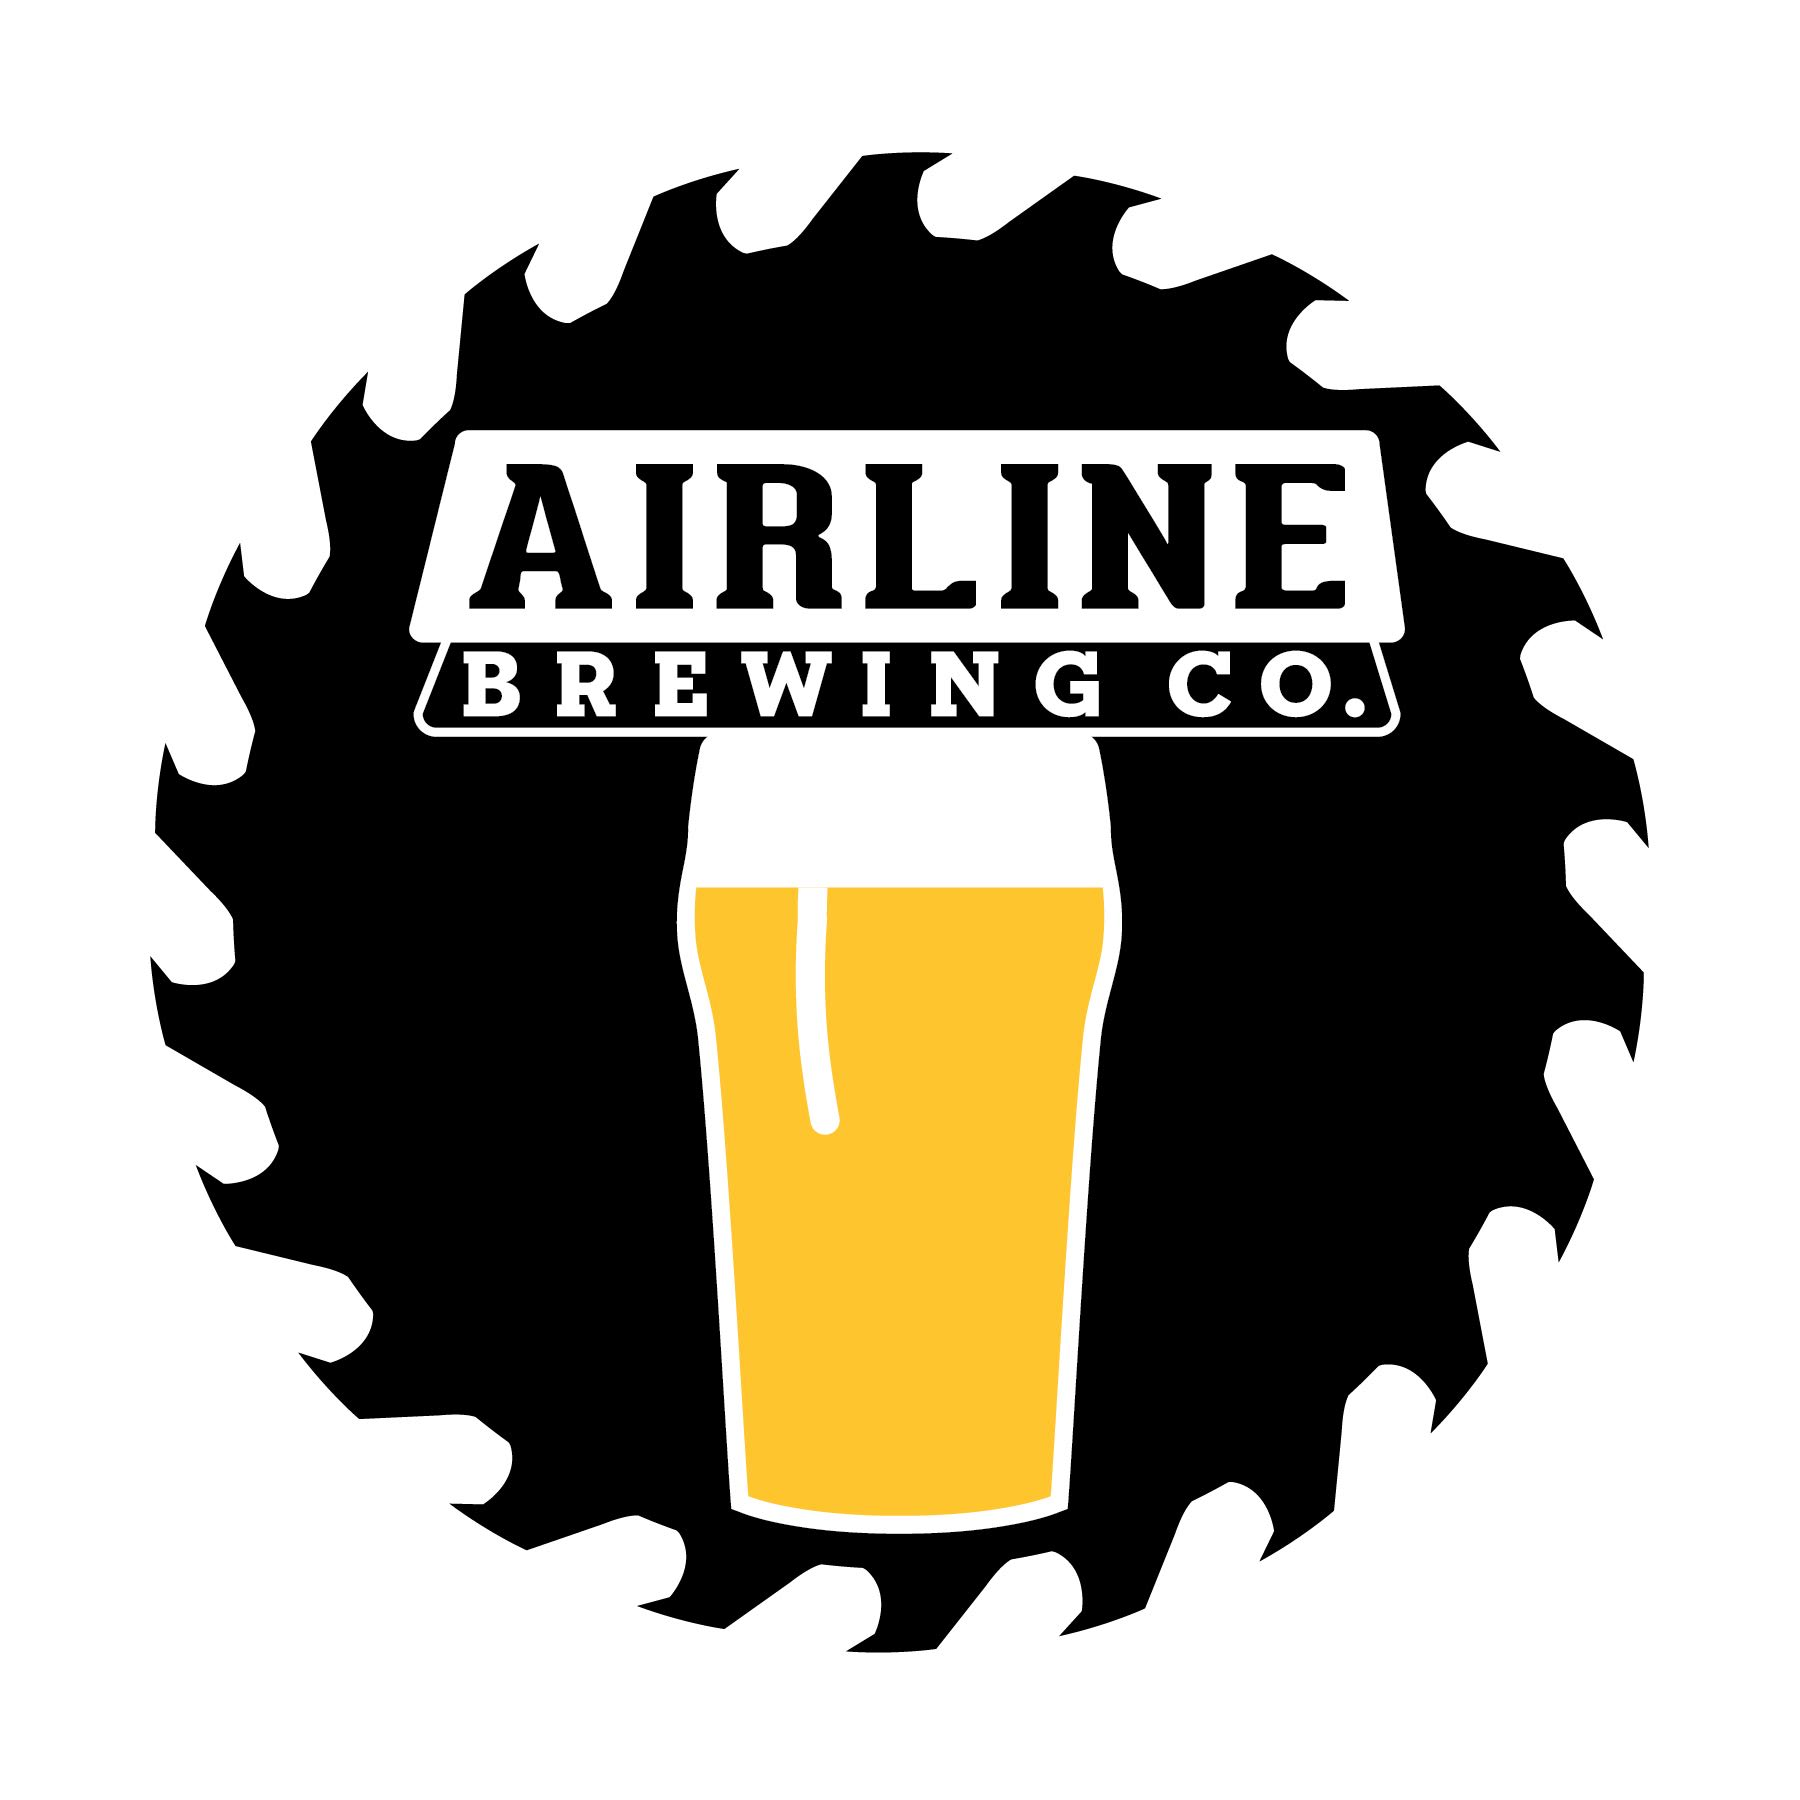 Airline Brewing Co